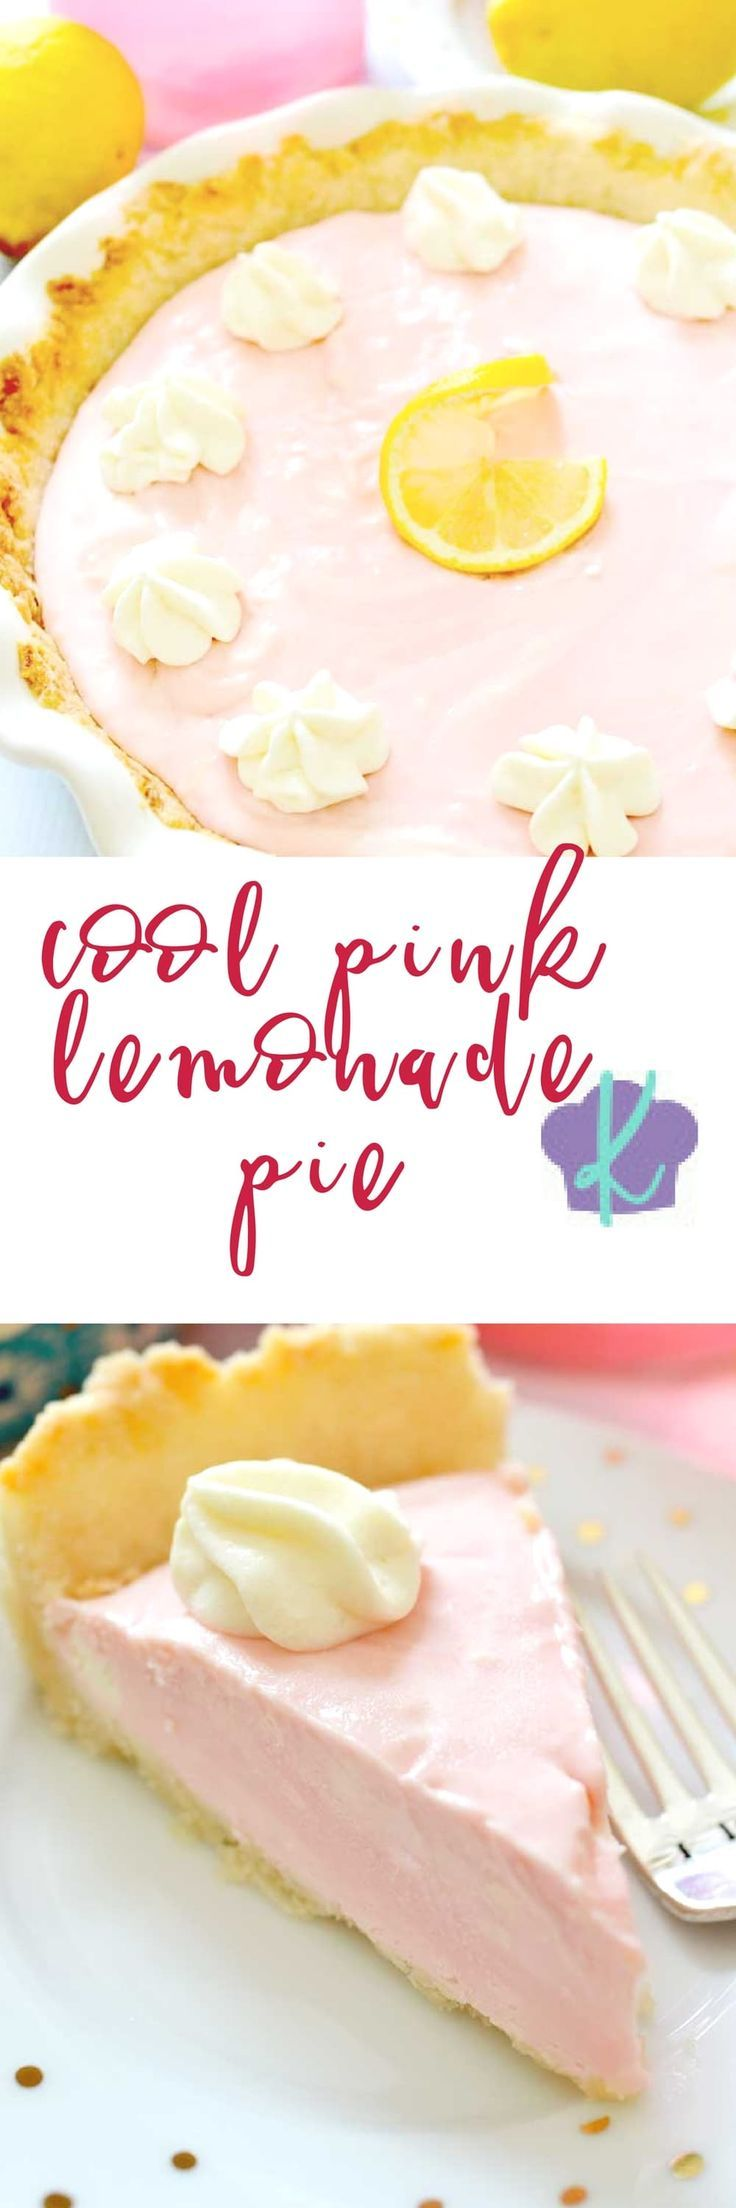 Cool Pink Lemonade Pie is just perfect for those hot summer days.  This creamy treat combines pink lemonade concentrate, cream cheese, sweetened condensed milk, and Cool Whip for a perfectly tart and fluffy pie.  You'll feel like a kid at a lemonade stand - only you'll be using a fork, not a straw! | pie recipes | summer pie recipes | how to make pink lemonade pie | summer desserts | summer dessert recipes || Kitchen Meets Girl